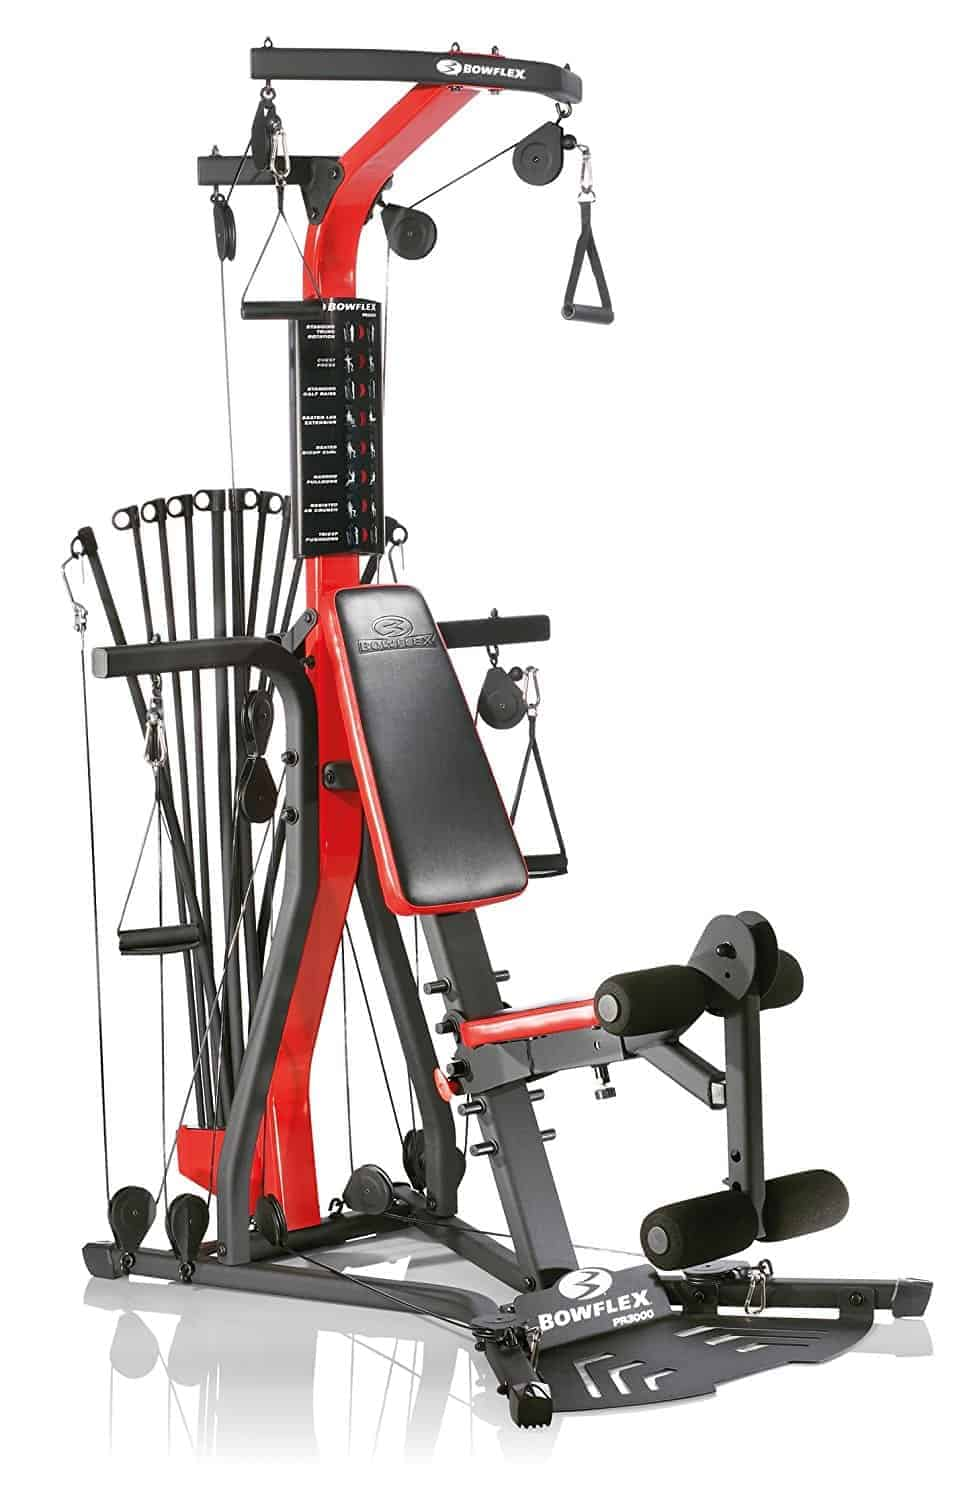 Best bowflex home gym reviews comparison of models